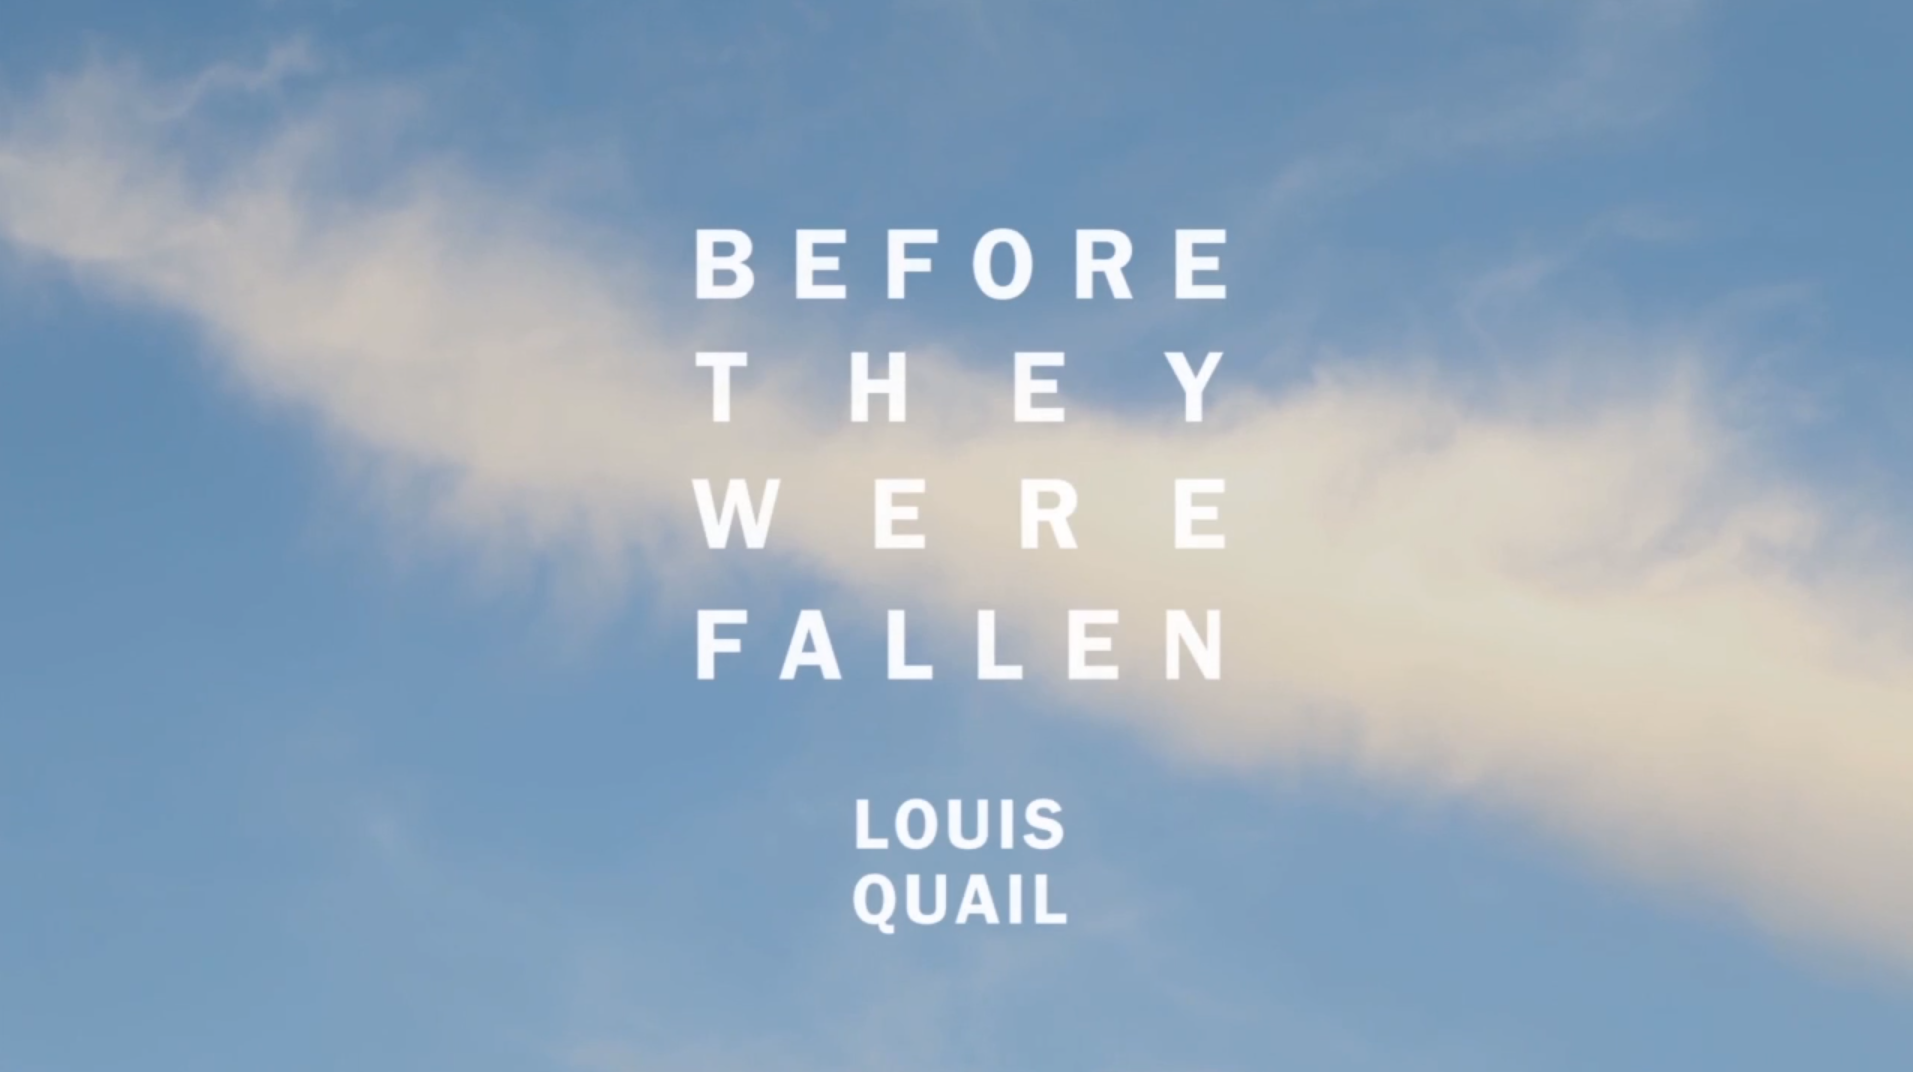 Before They Were Fallen, Louis Quail